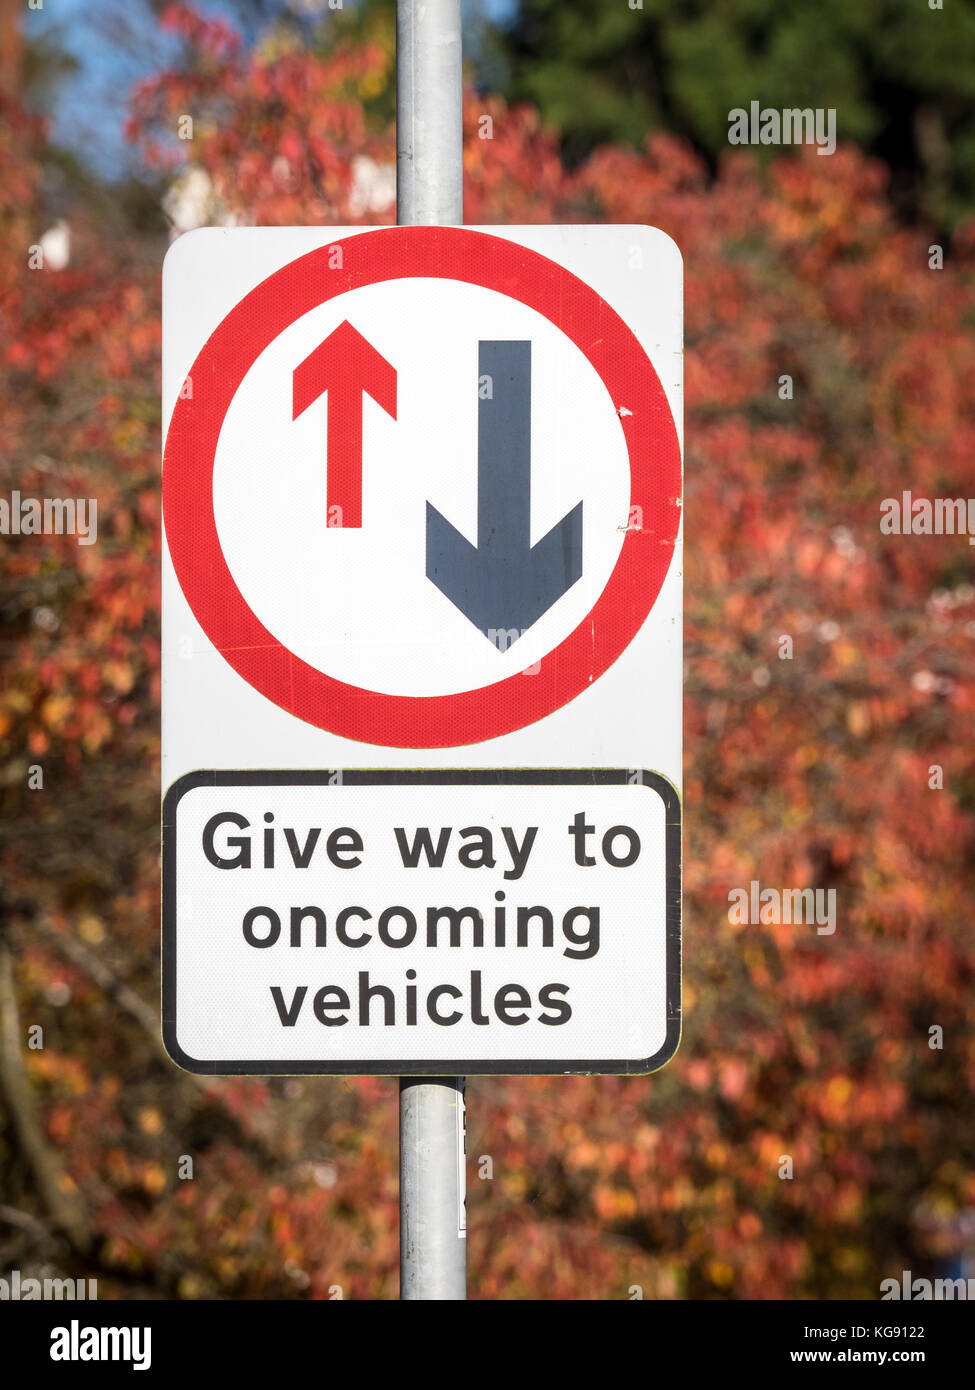 Give Way to Oncoming Vehicles - UK Road Sign - Stock Image